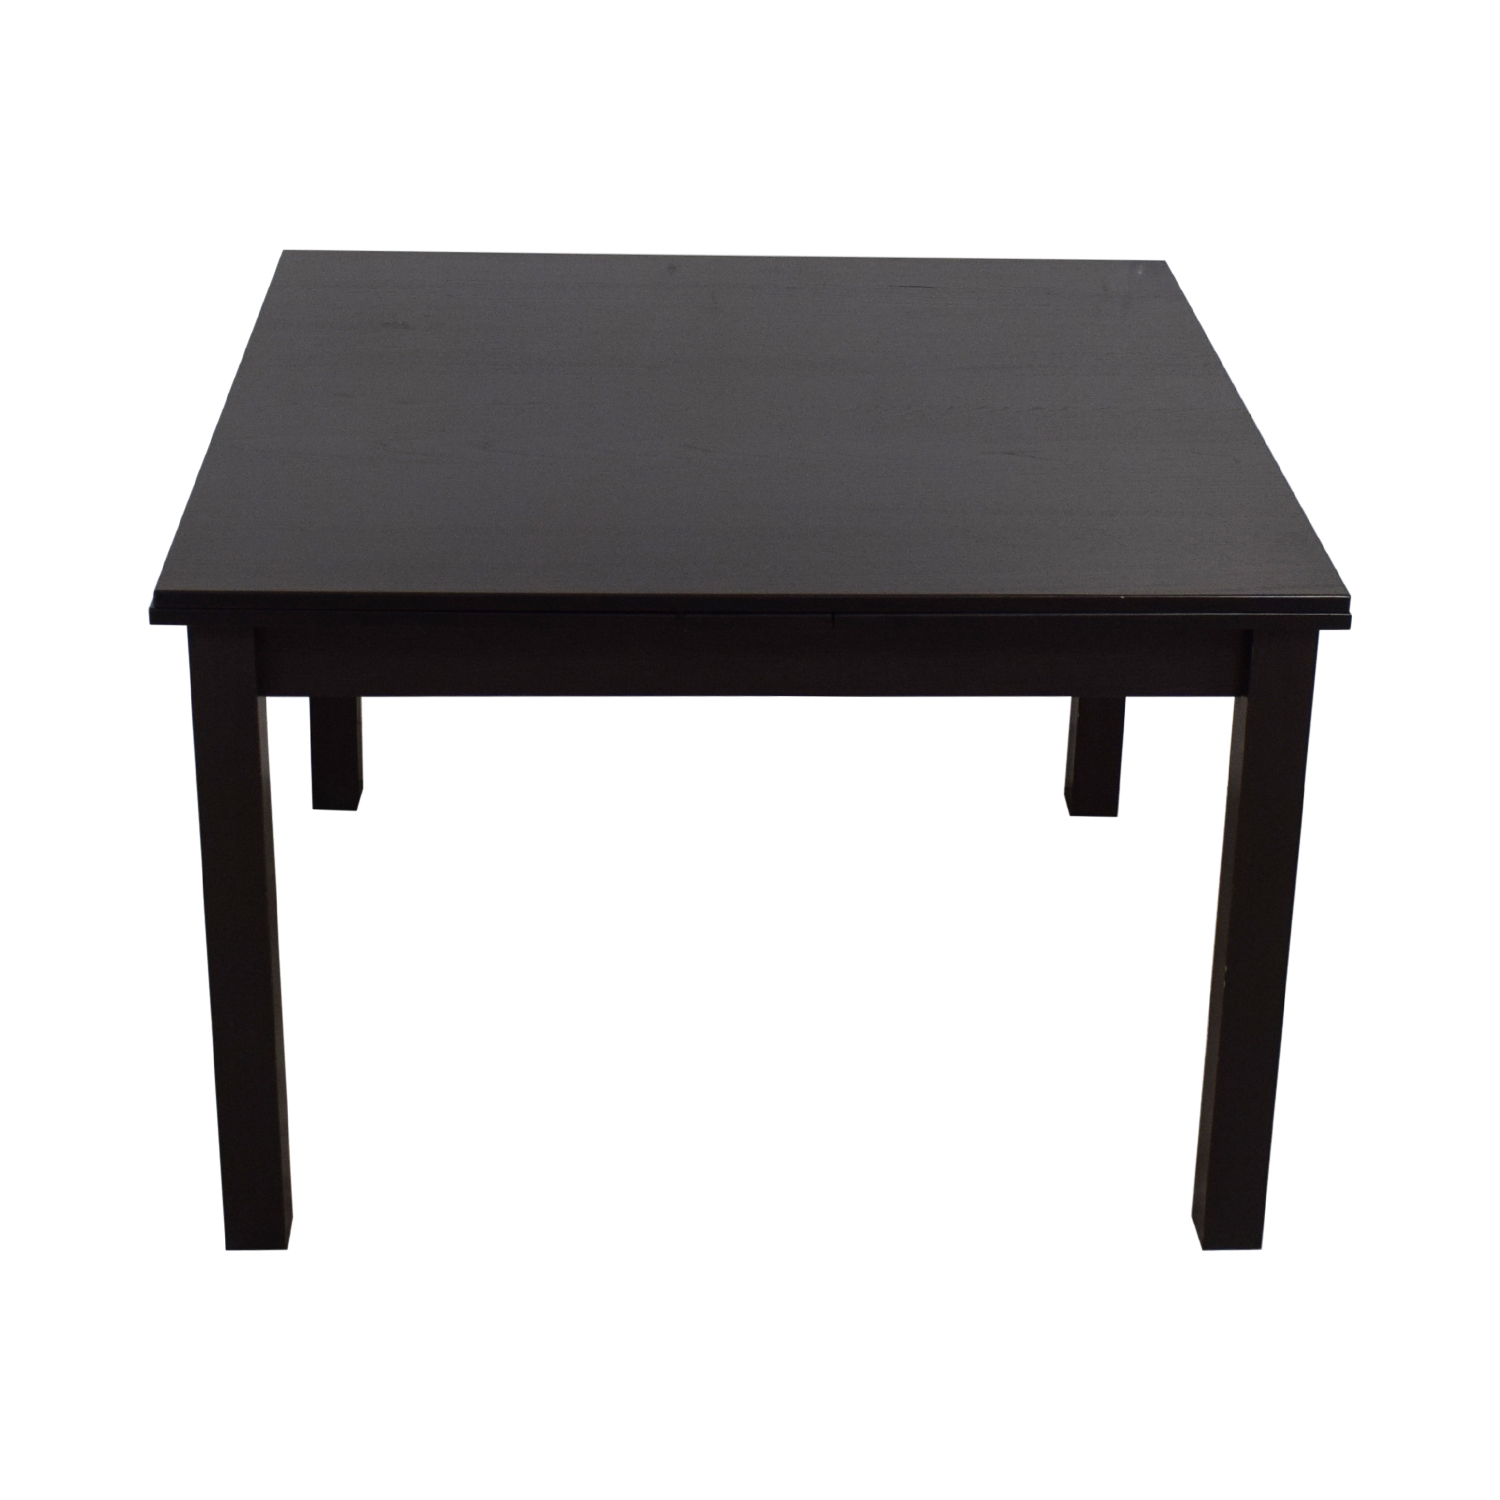 Crate & Barrel Crate & Barrel Expandable Wood Dining Table on sale